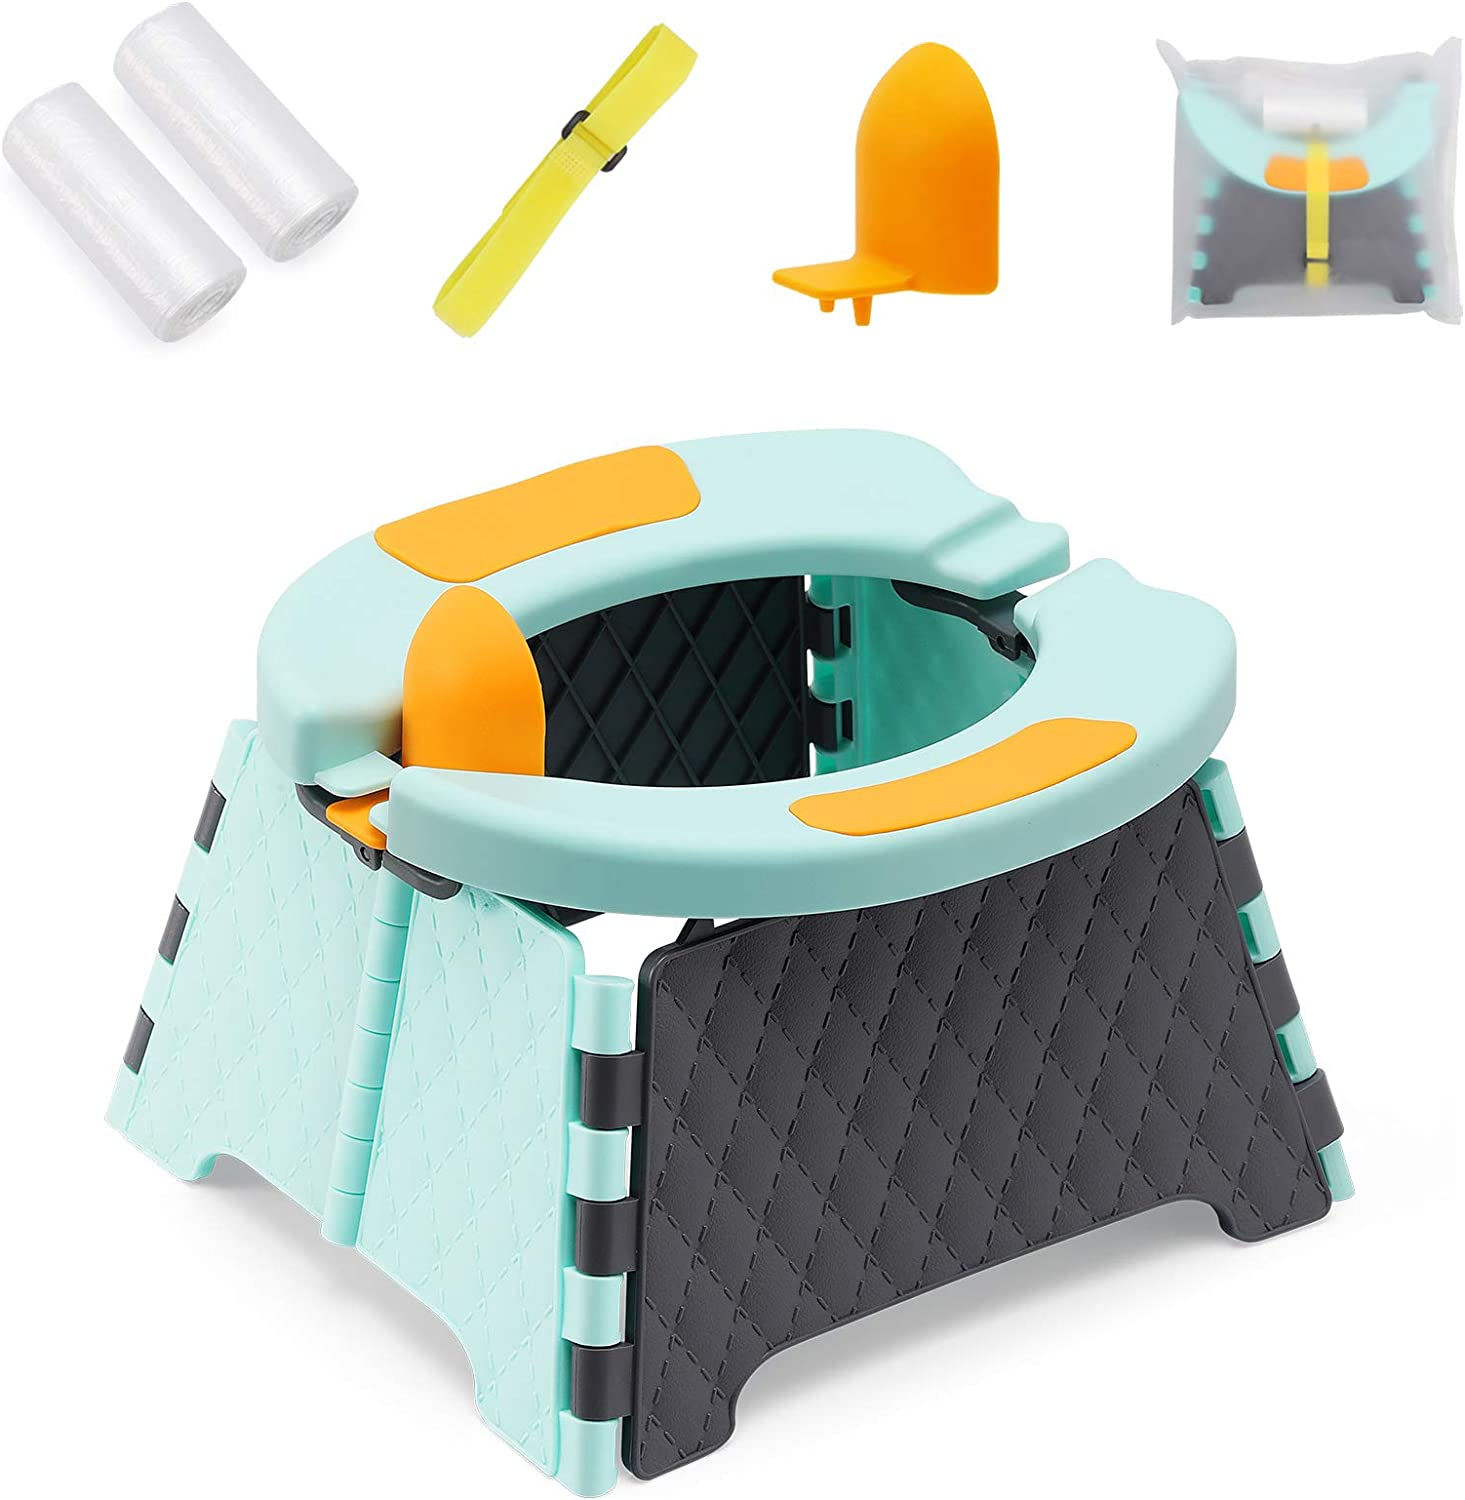 YUNHECAM Toddler Portable Potty Training Seat for Kids Baby Foldable Toilet Child Travel Potty in Car Camping Potty Chair Seat for Indoor Outdoor, with 60 Disposable Bags